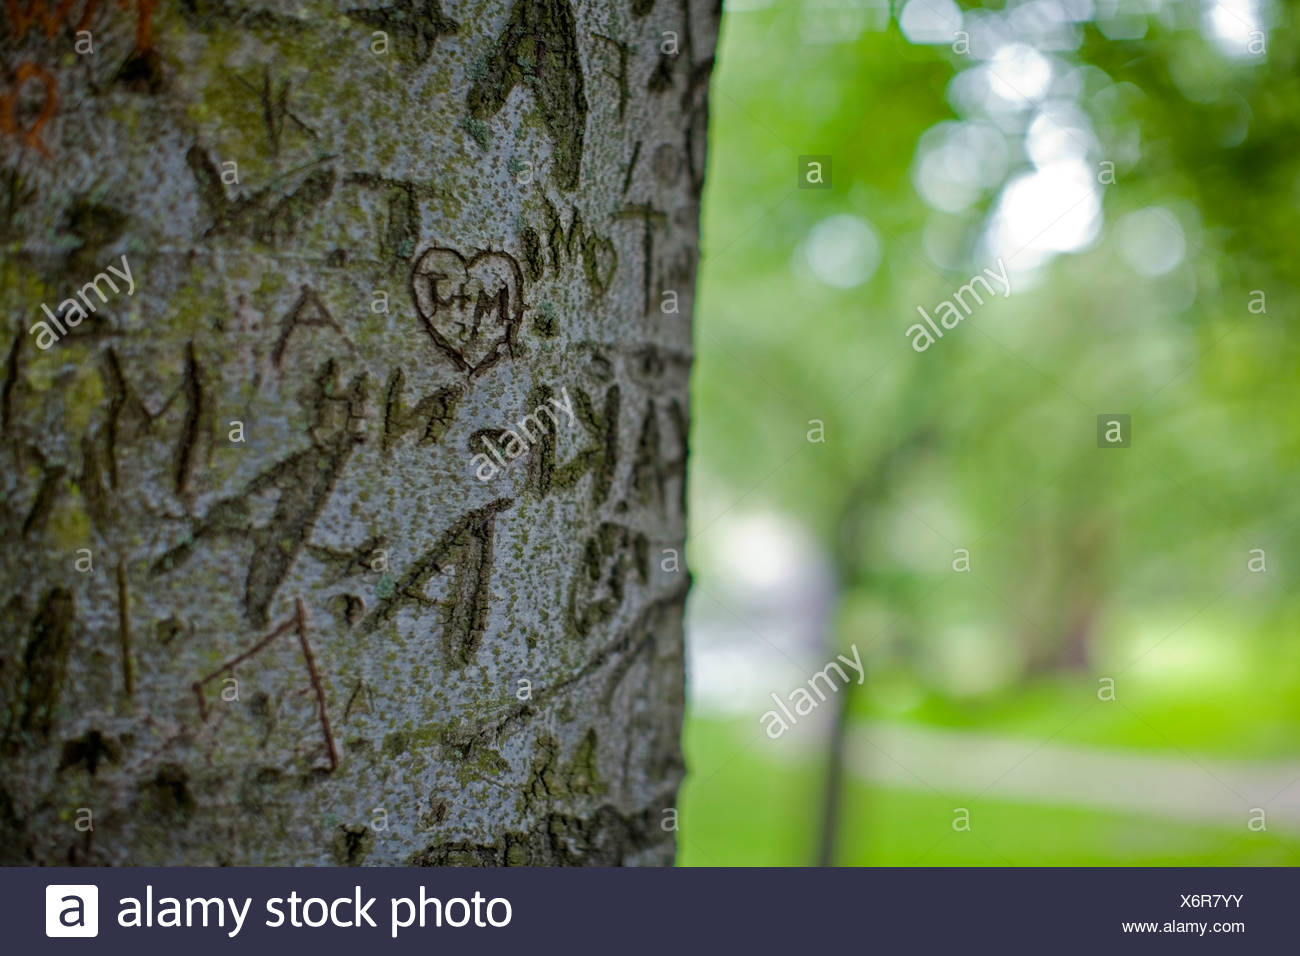 Close-up of love expressions carved on a cropped tree trunk against blurred green background - Stock Image